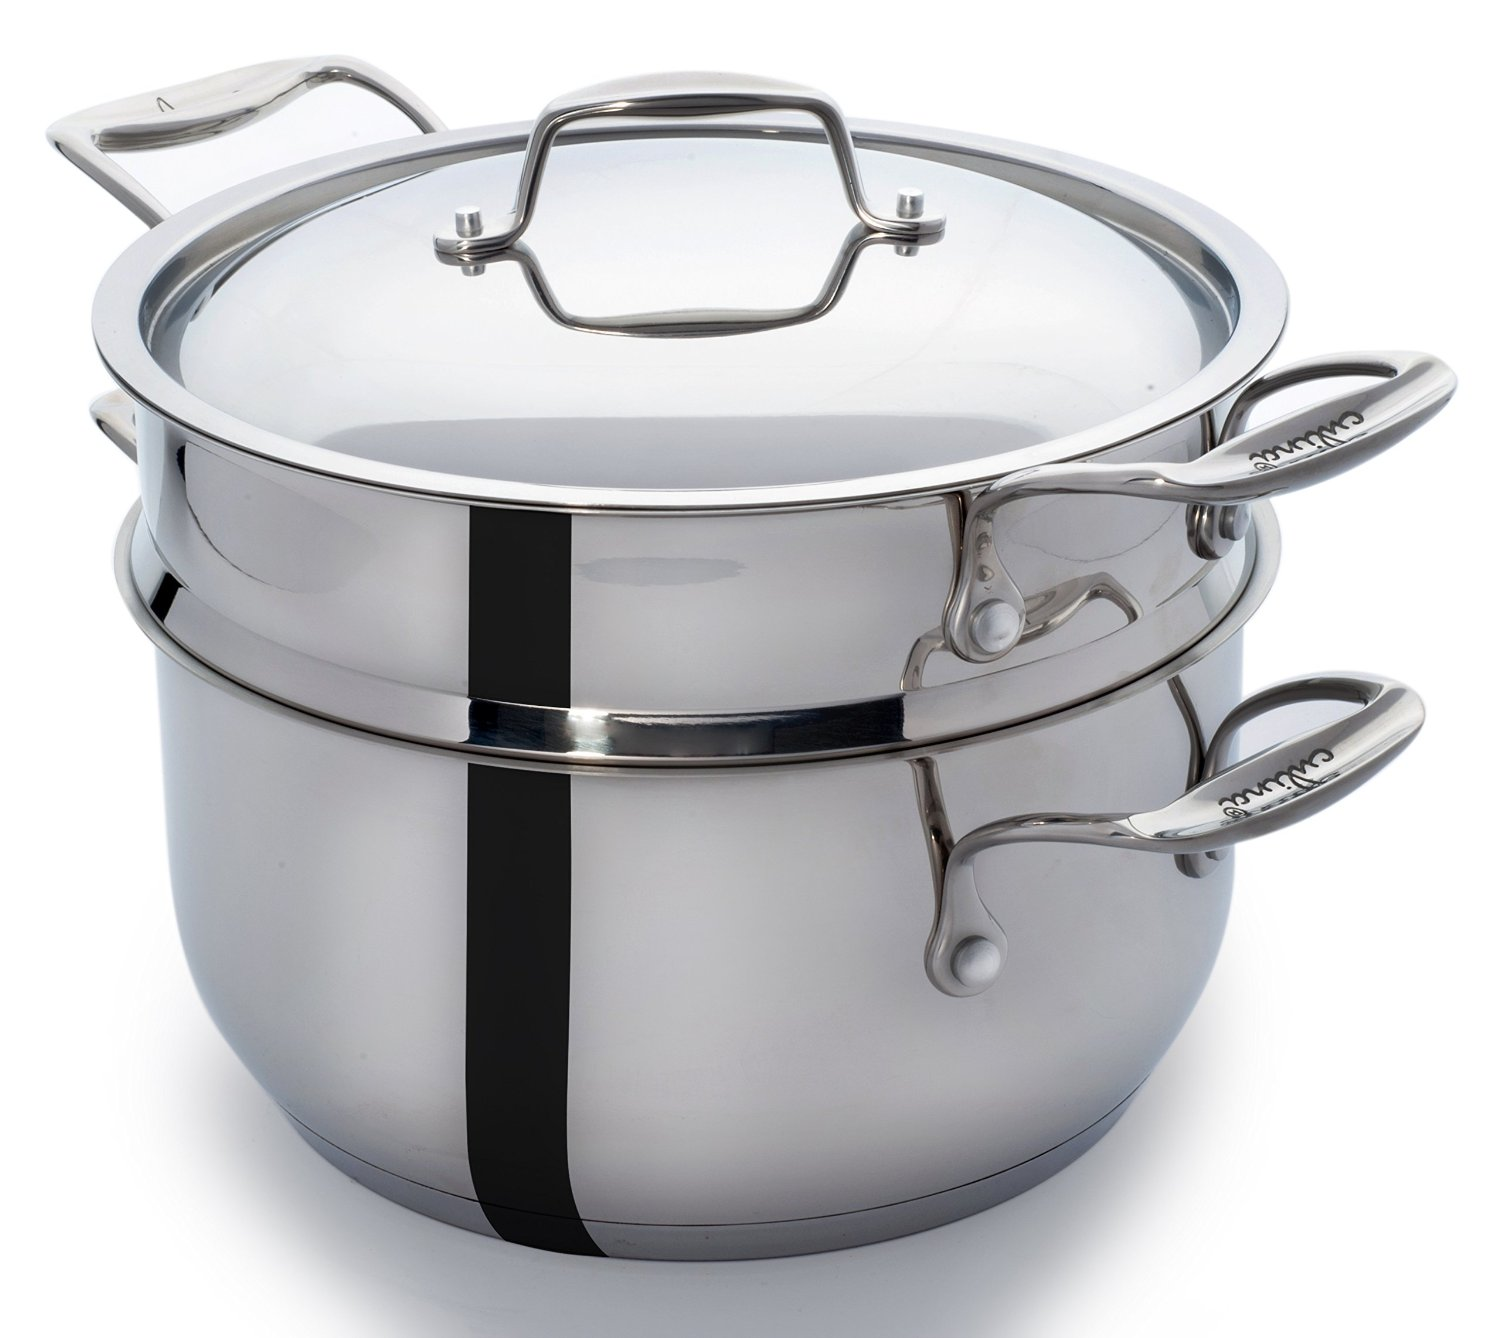 Cooking Pot Steamer ~ Culina stainless steel qt pot with steamer insert